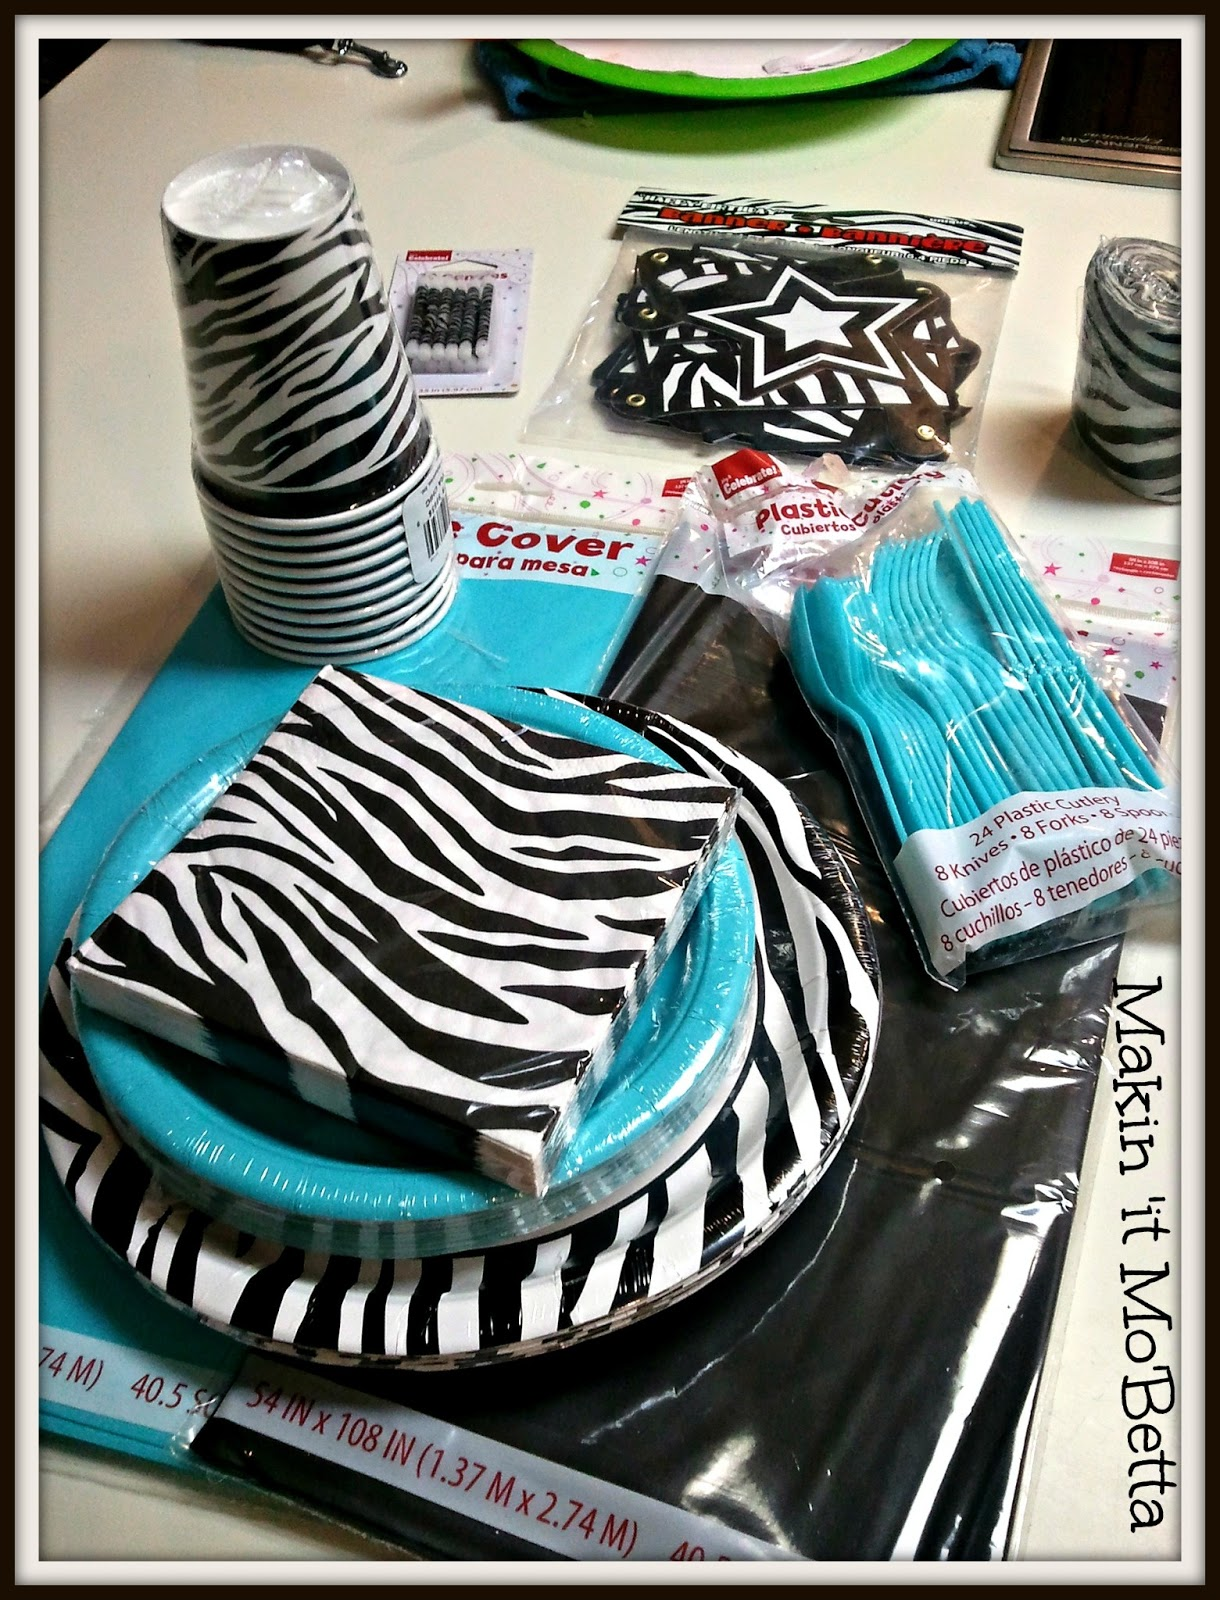 ... about the zebra print so we were zebra d out for her birthday party